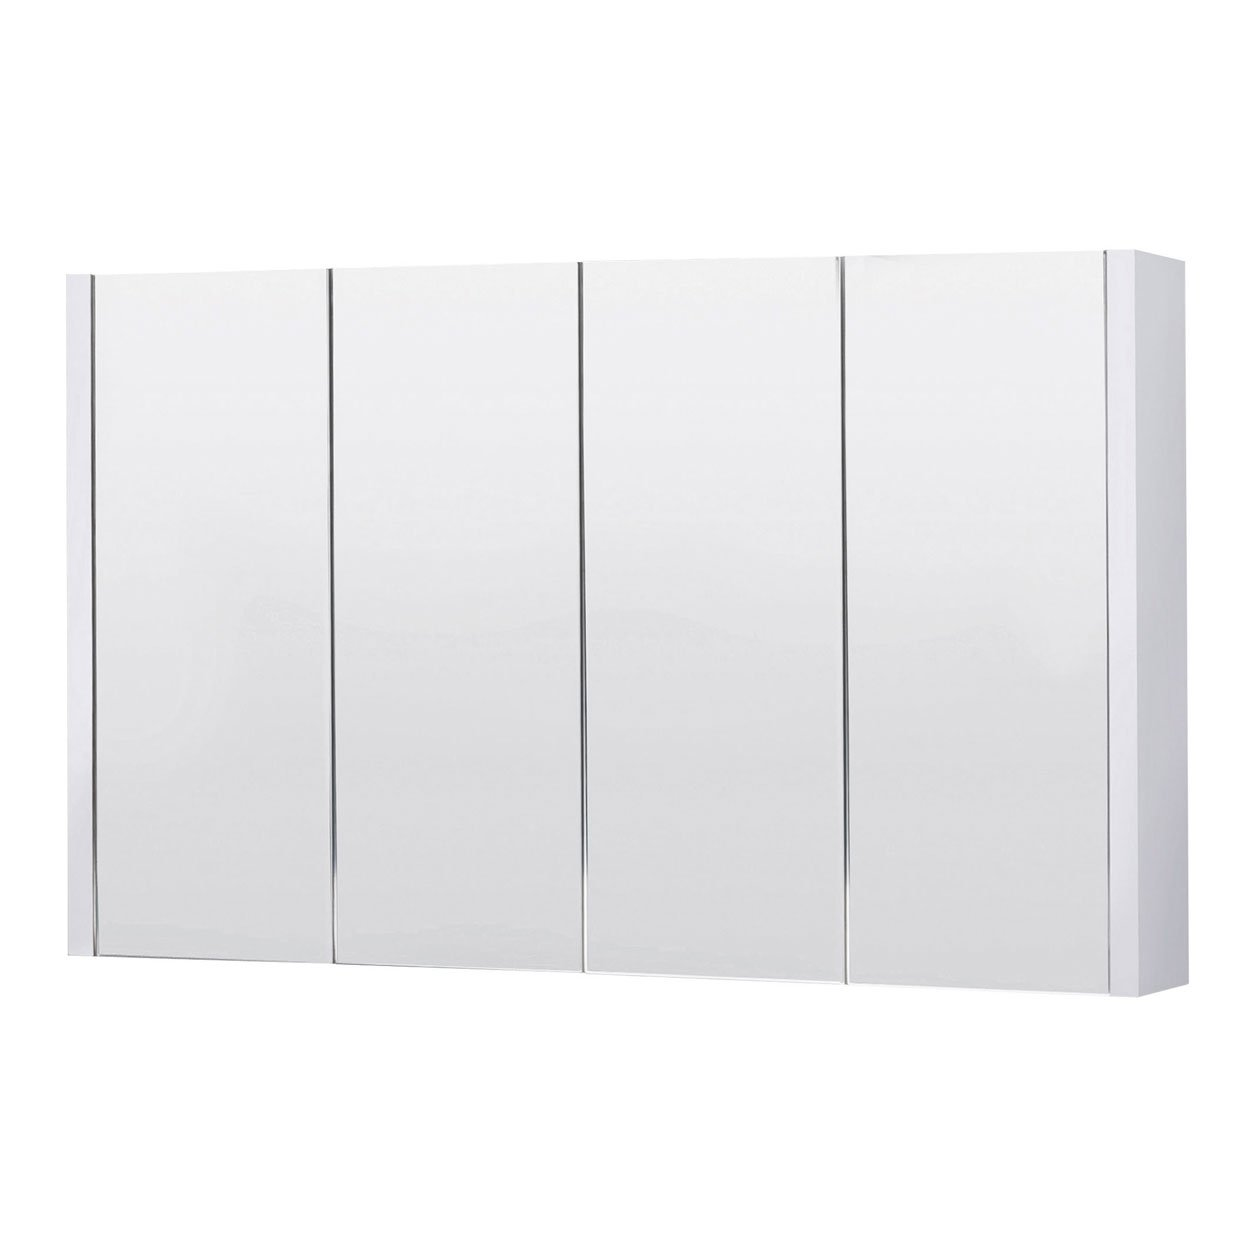 Havana White 1200mm 4-Door Mirror Cabinet: Amazon.co.uk: Kitchen ...